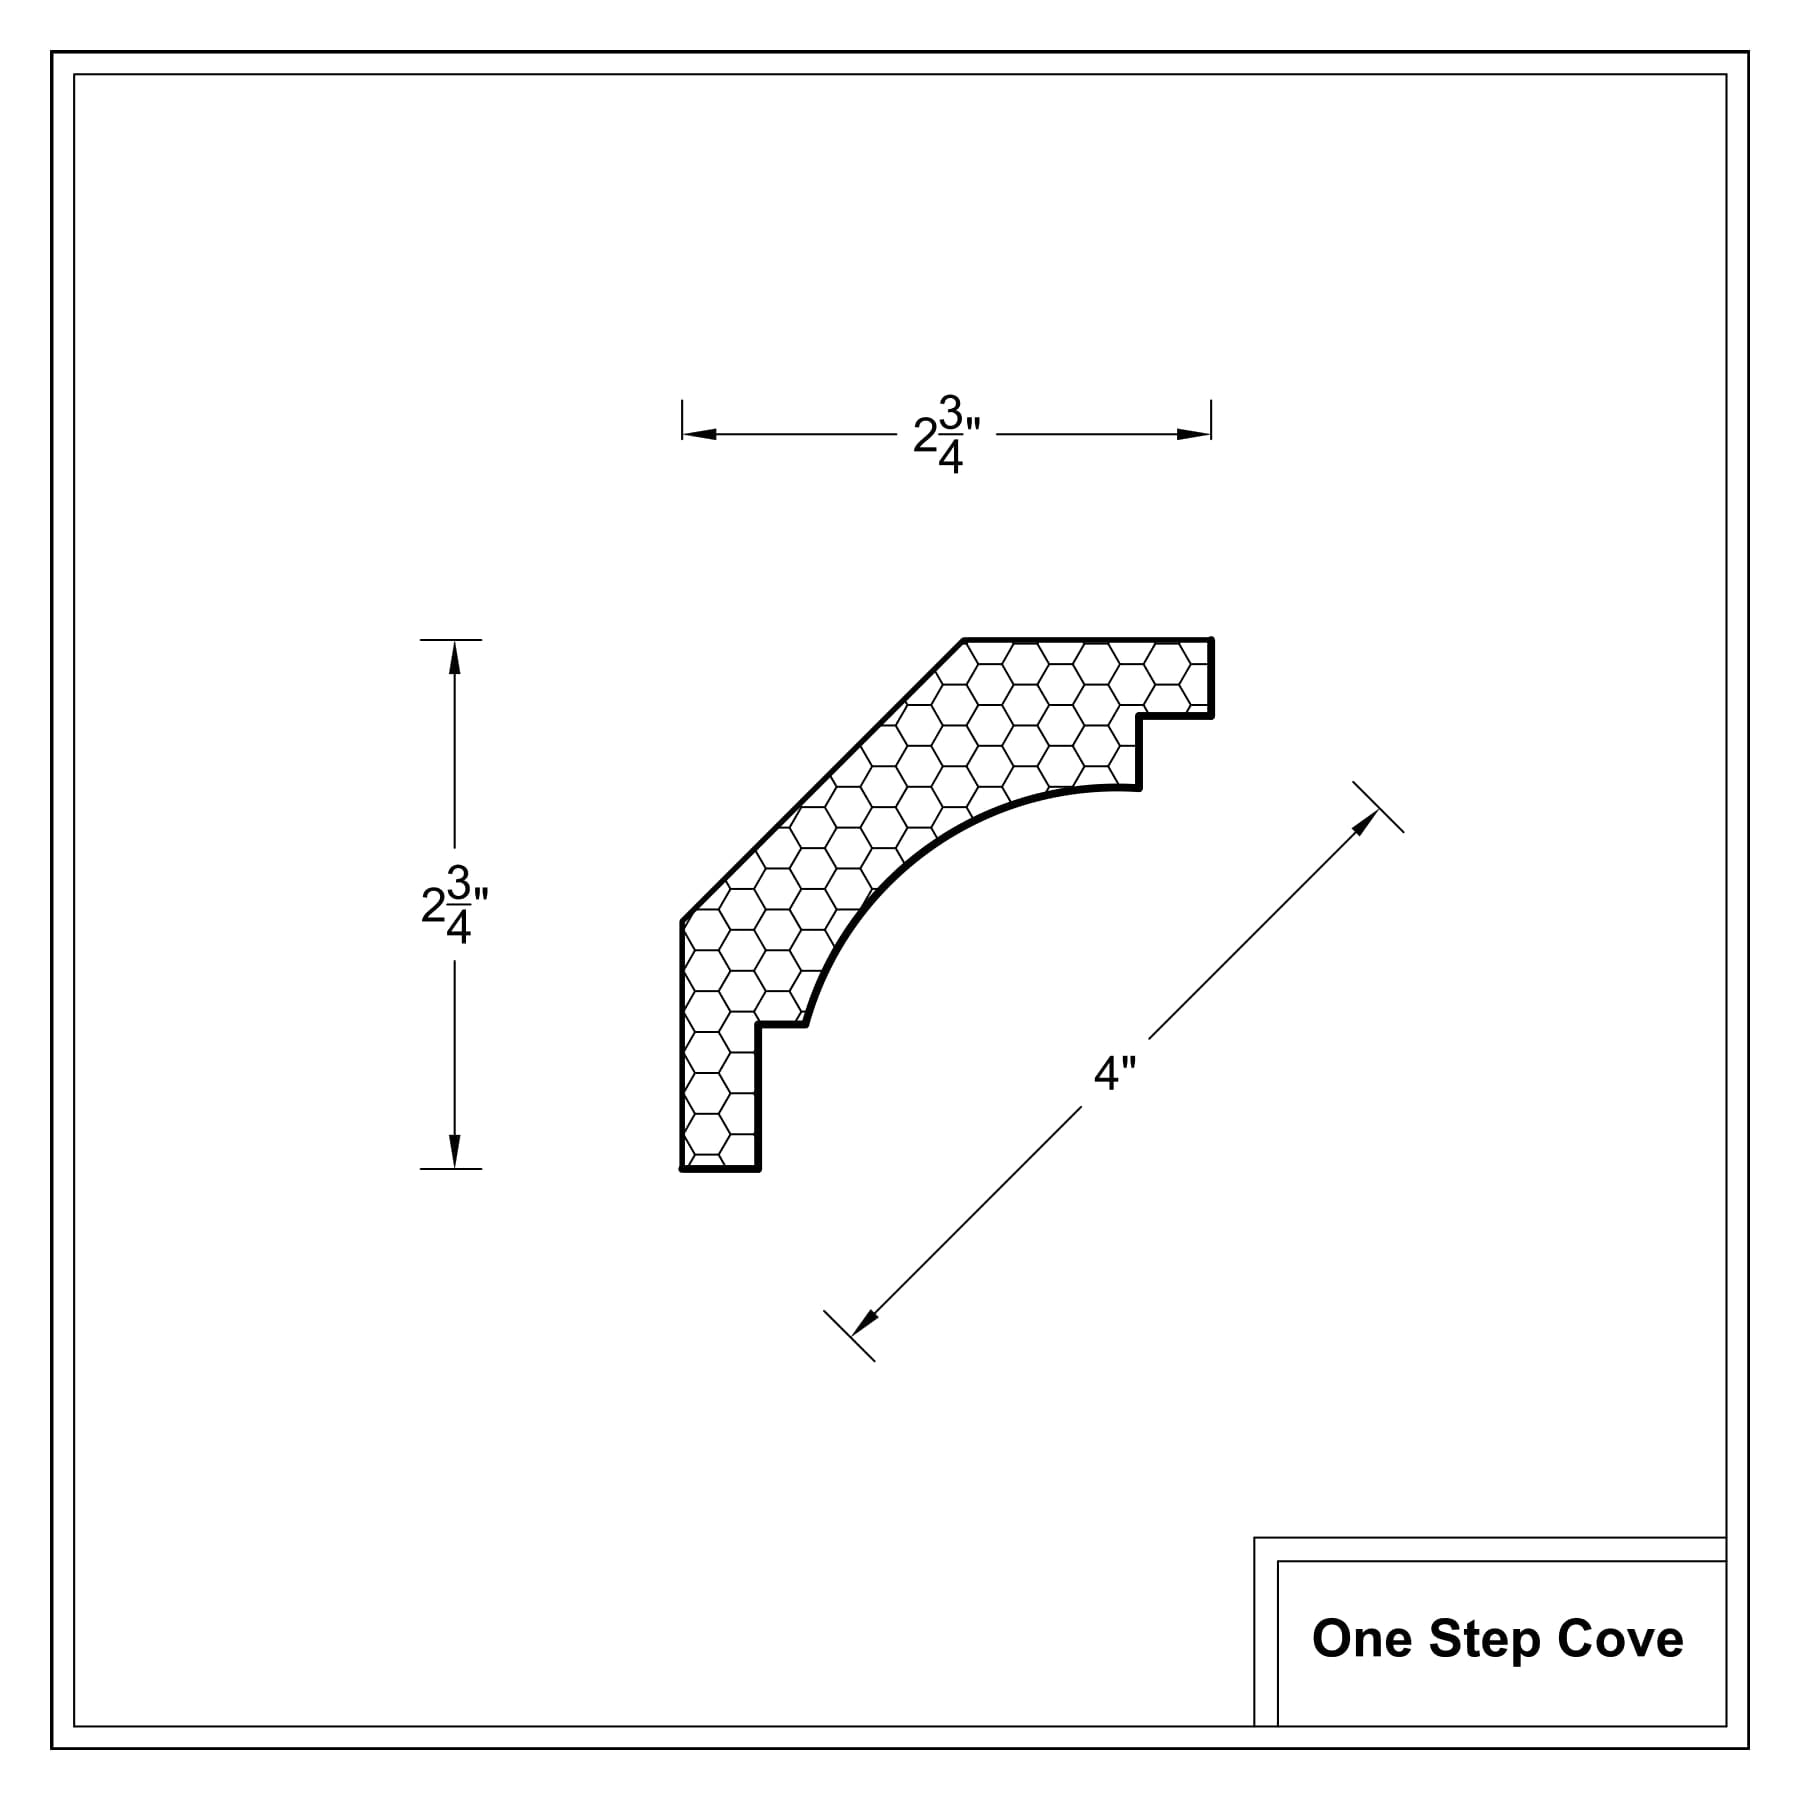 Crown moulding - One Step Cross Sections